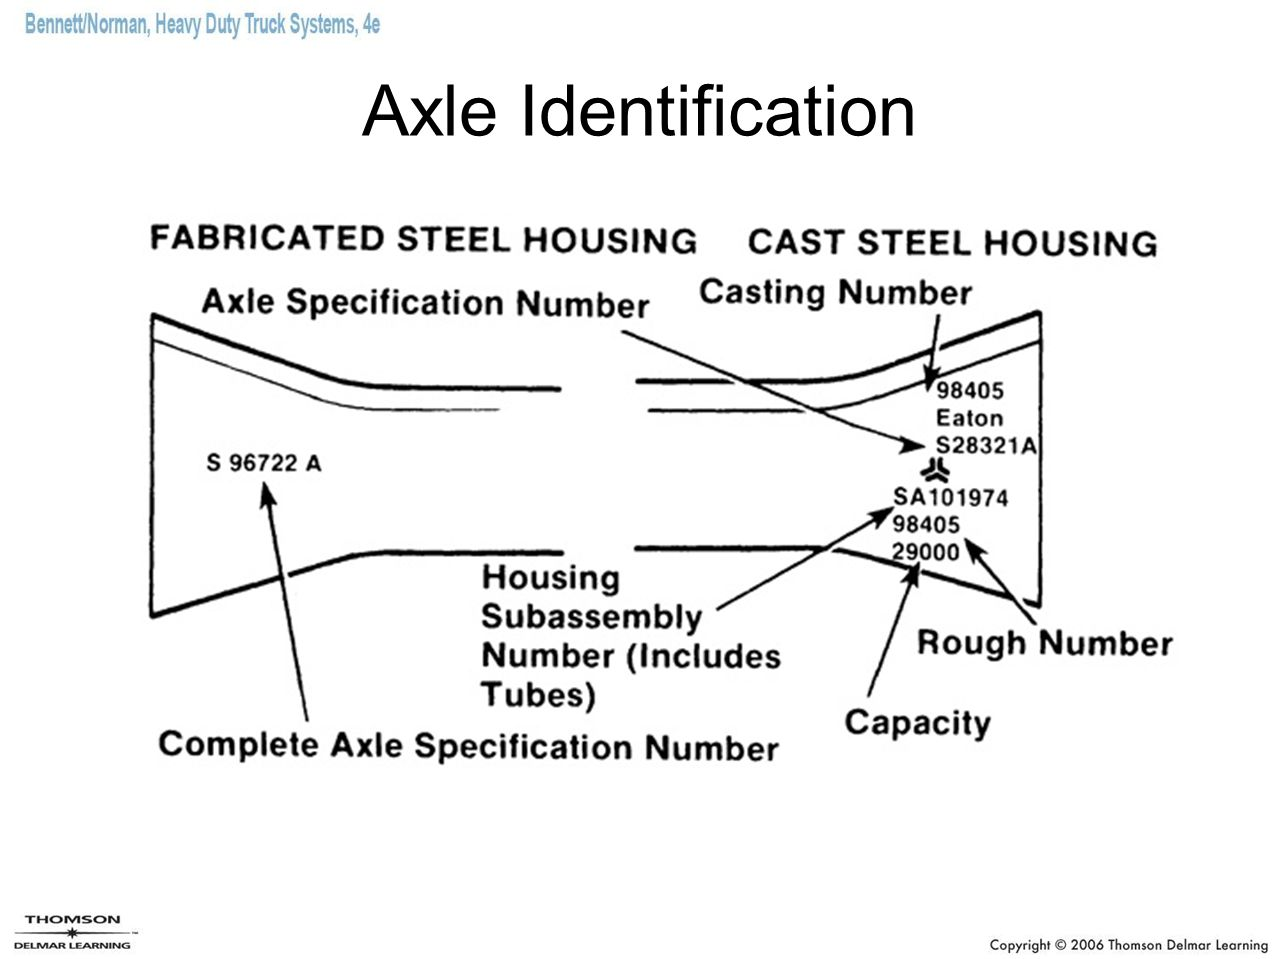 Axle Identification